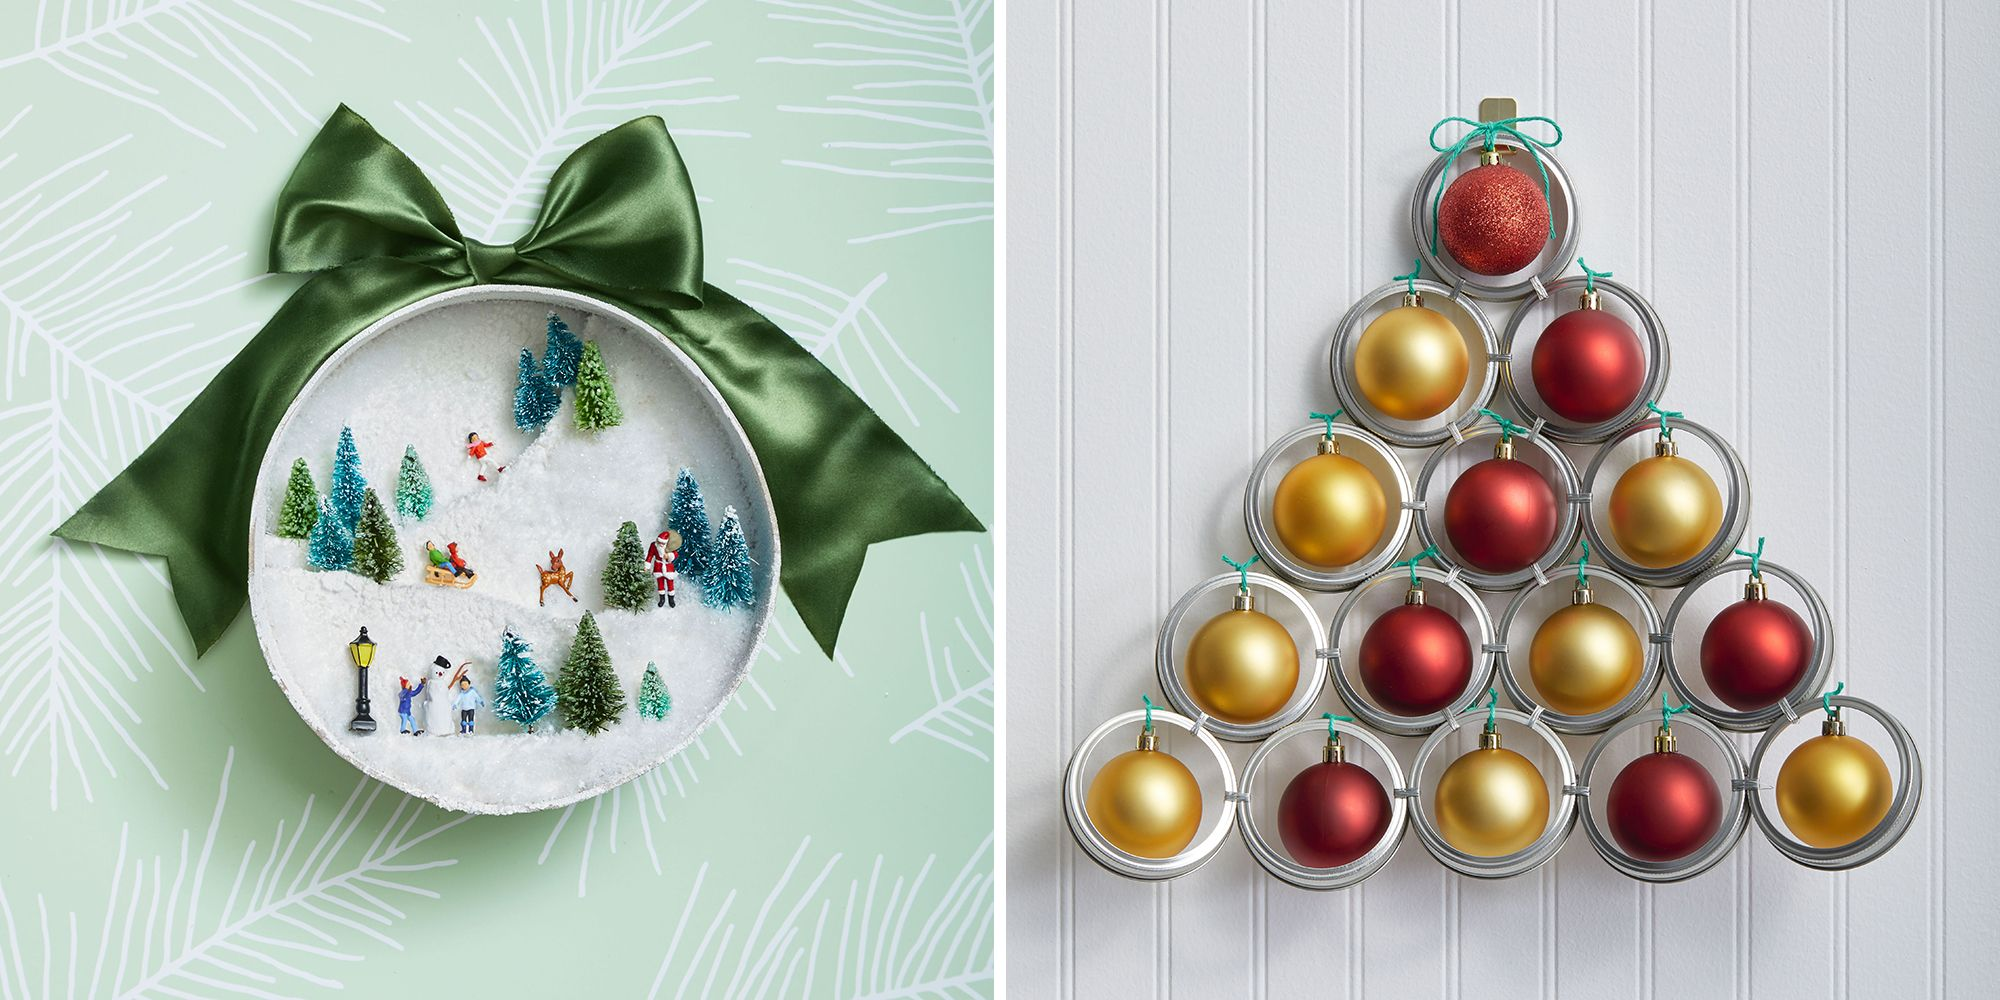 10 Easy DIY Christmas Decorations 10 - Homemade Holiday Decorations